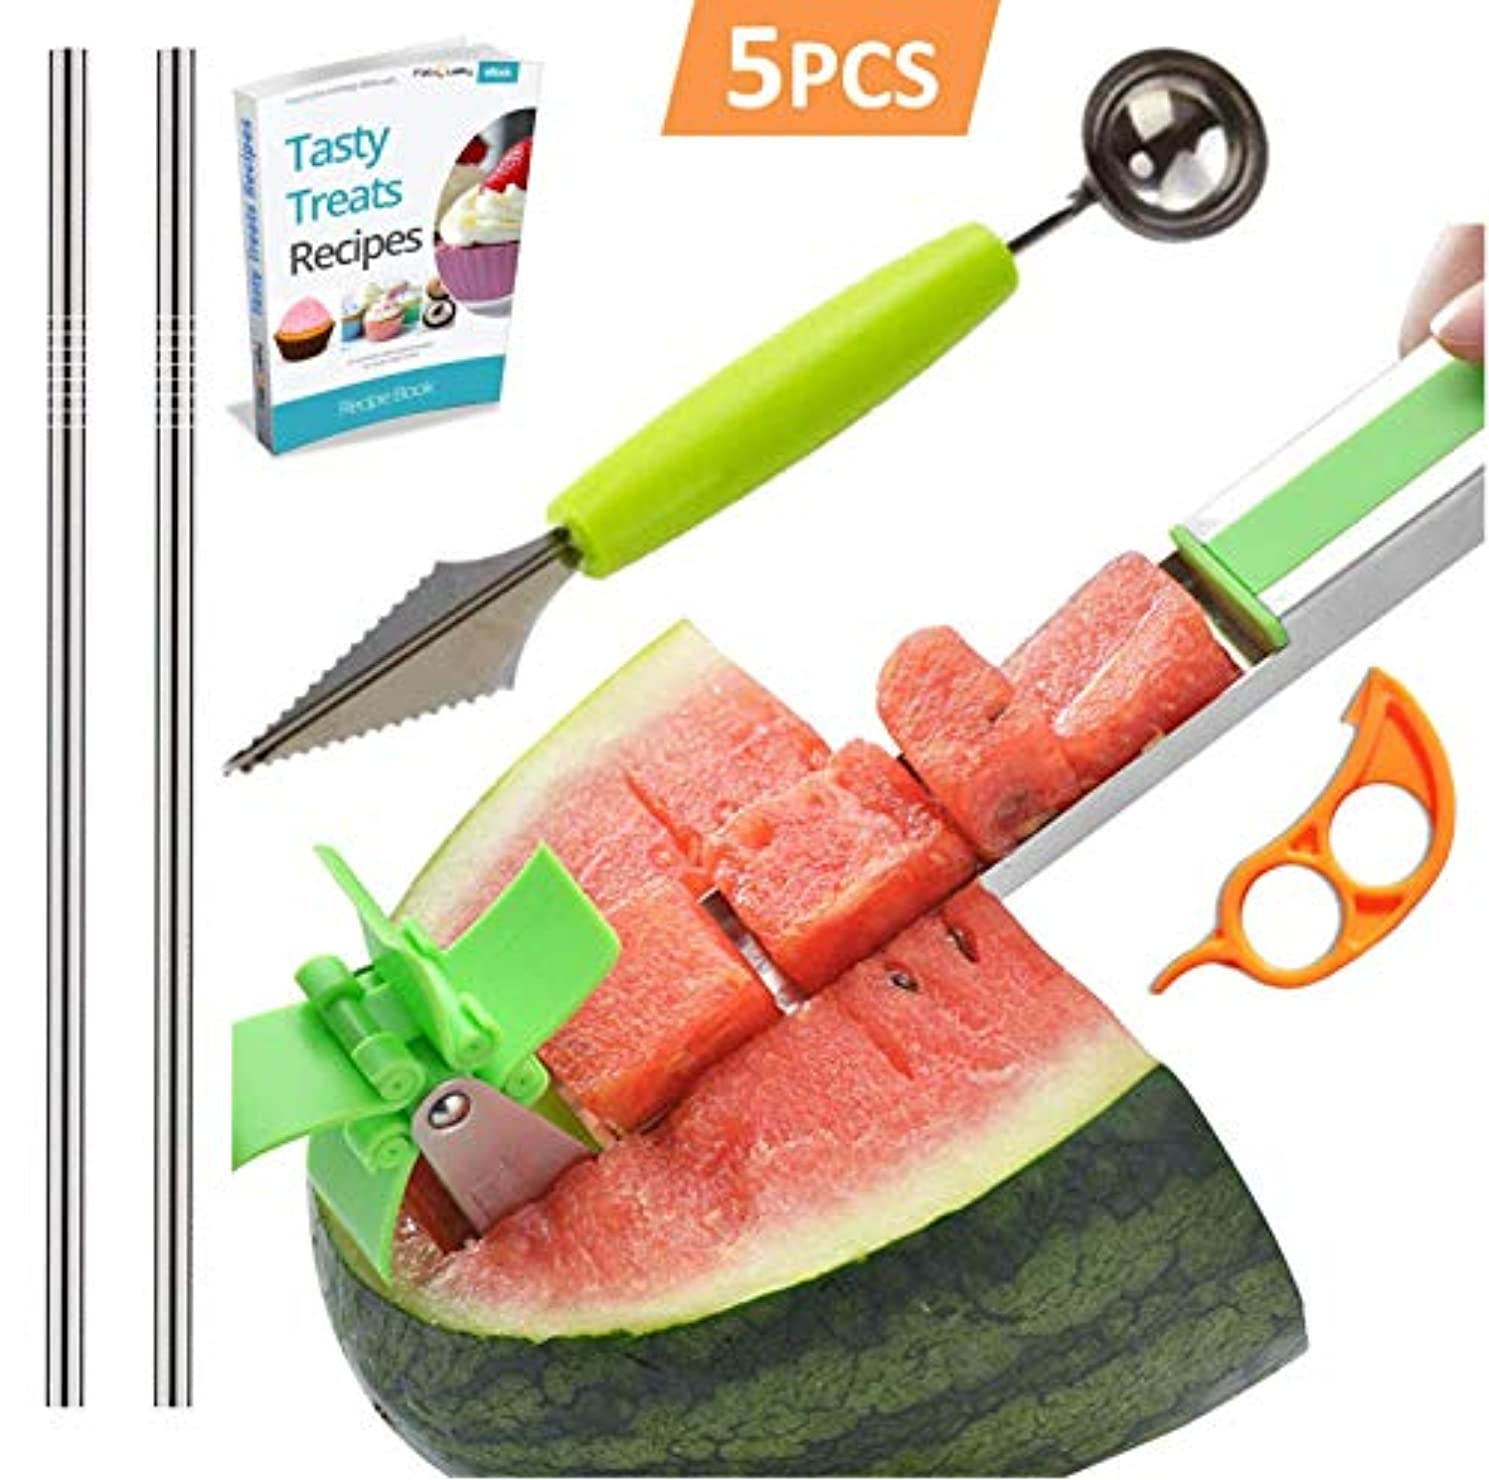 Watermelon Slicer Stainless Steel + Slicer Cutter Knife Corer + 2 Reusable Straws + Orange Peeler - Fruit Vegetable Tools Kitchen Gadgets - No Mess - Less Stress (Green) + eBook